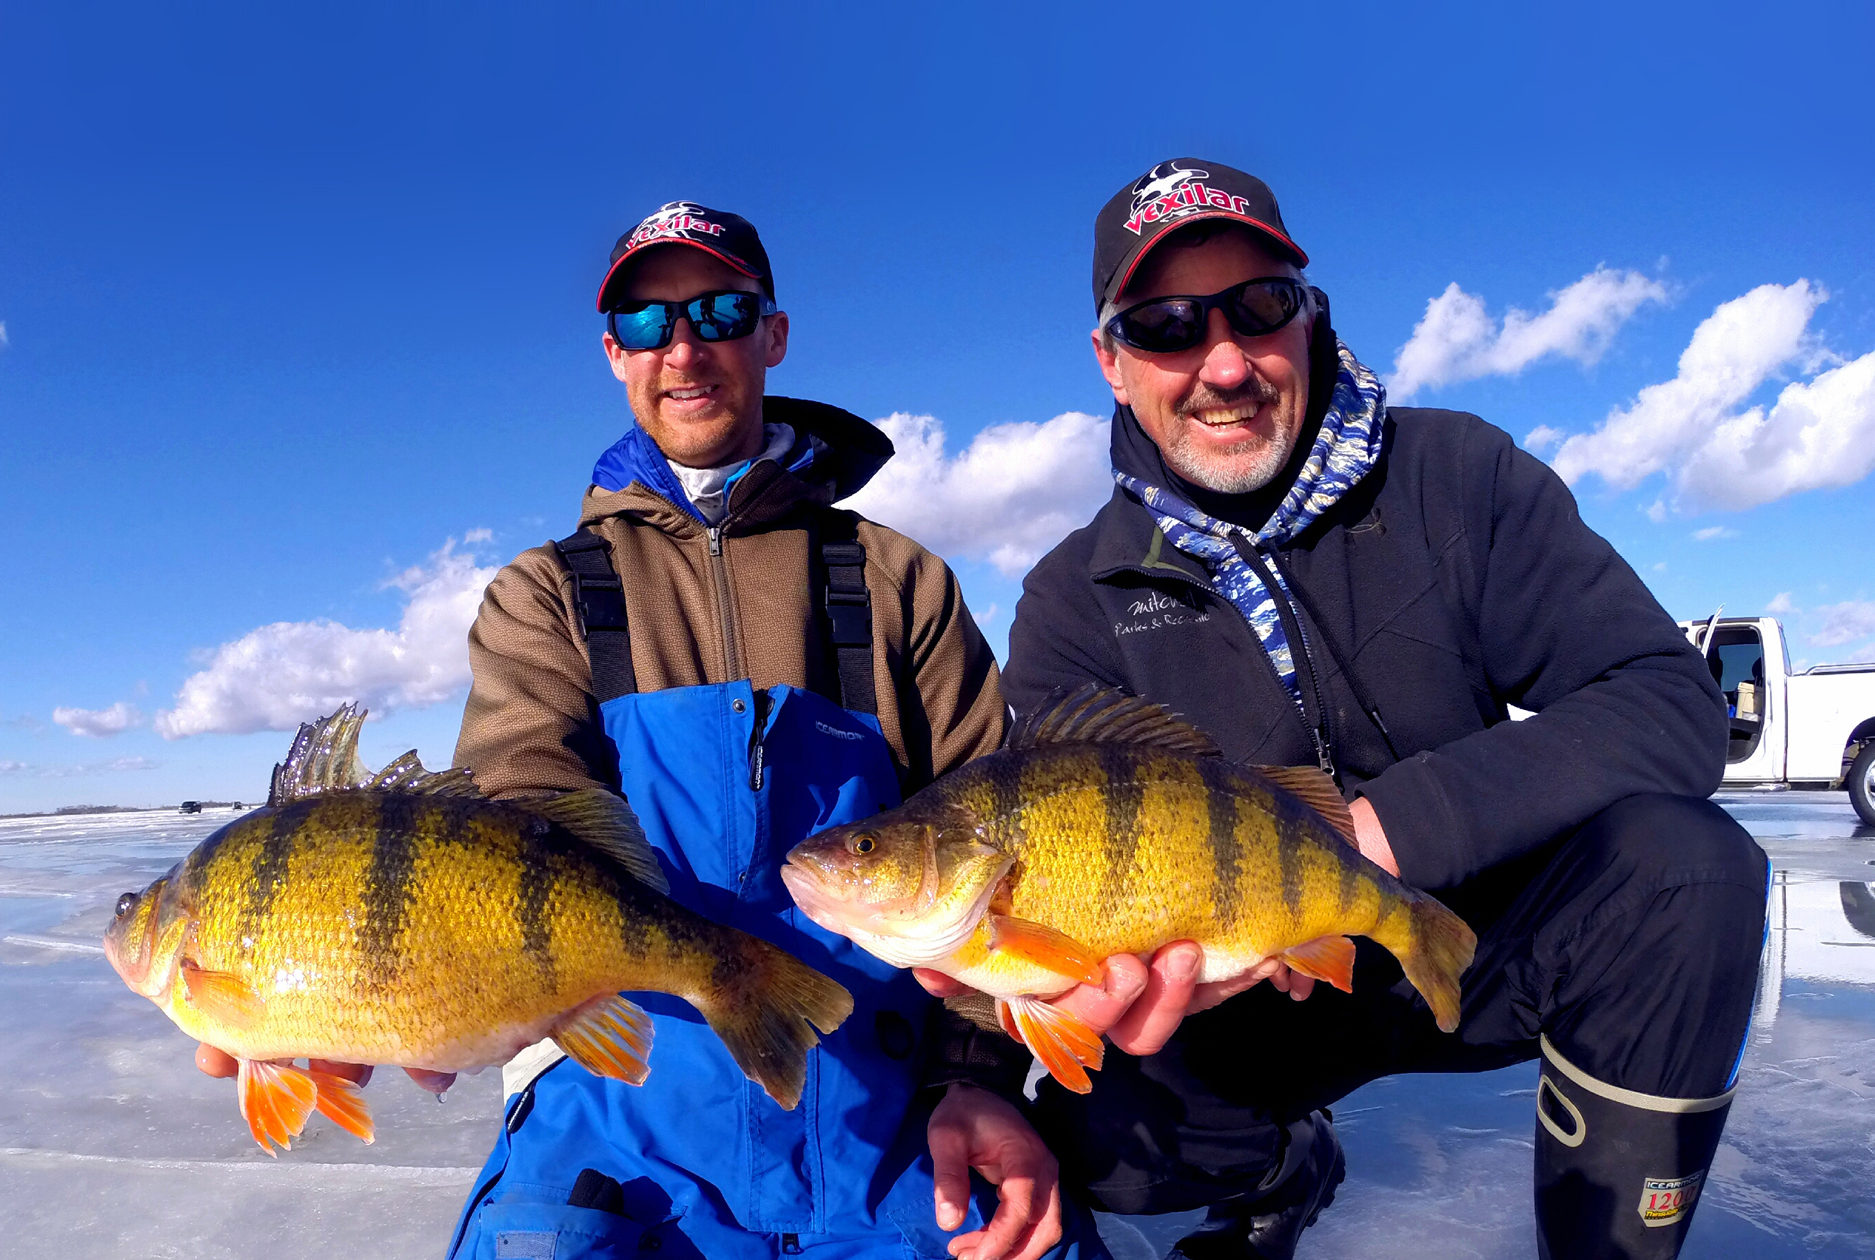 Jumbo perch fishing guide John Hoyer